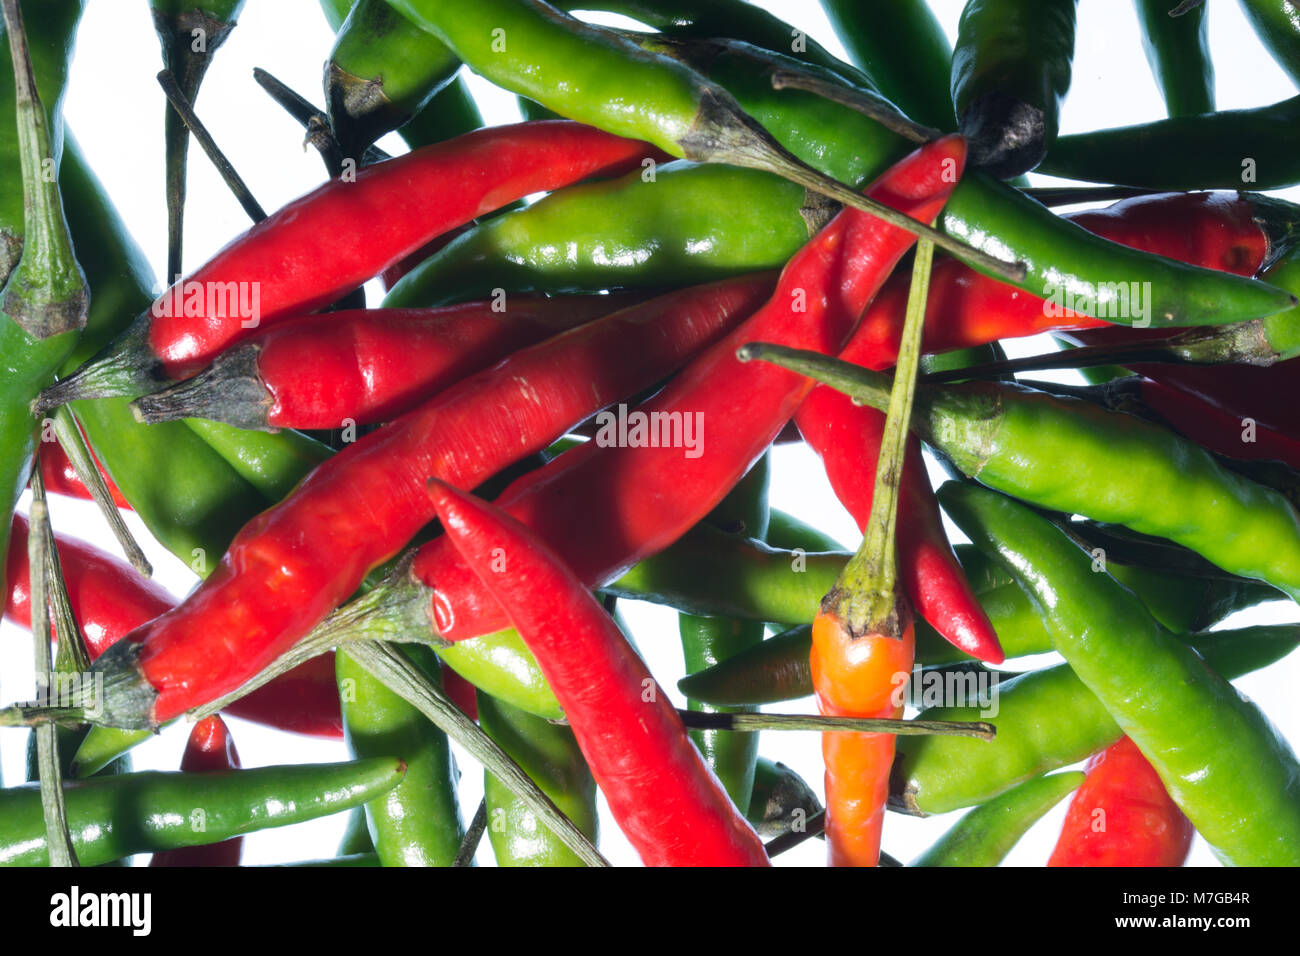 The Chilli Pepper, often called Chili Pepper, Chile Pepper or Chilli, is a fruit of the Capsicum family. They are - Stock Image